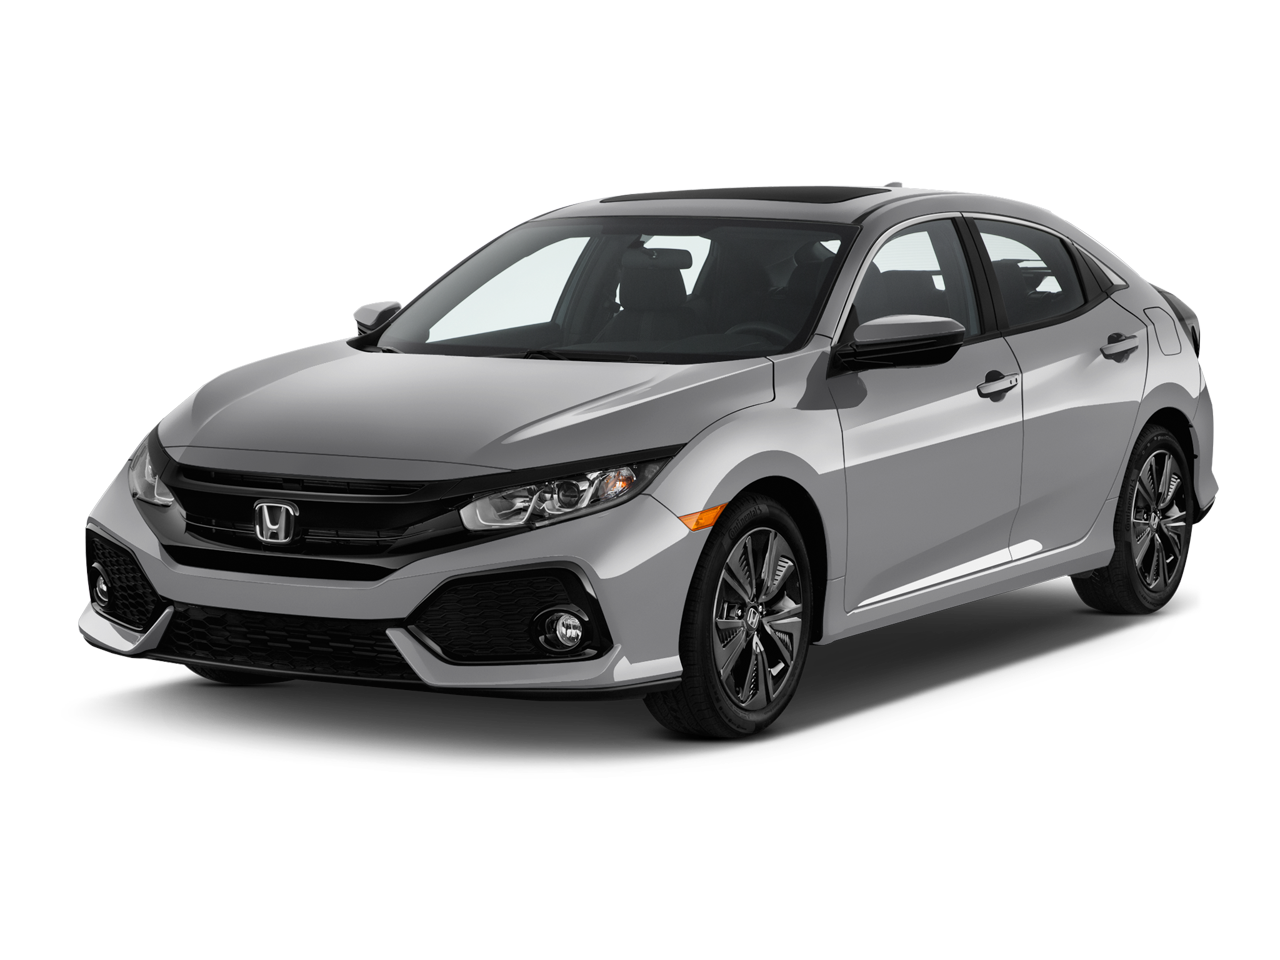 new 2017 honda civic ex near union nj planet honda new jersey. Black Bedroom Furniture Sets. Home Design Ideas